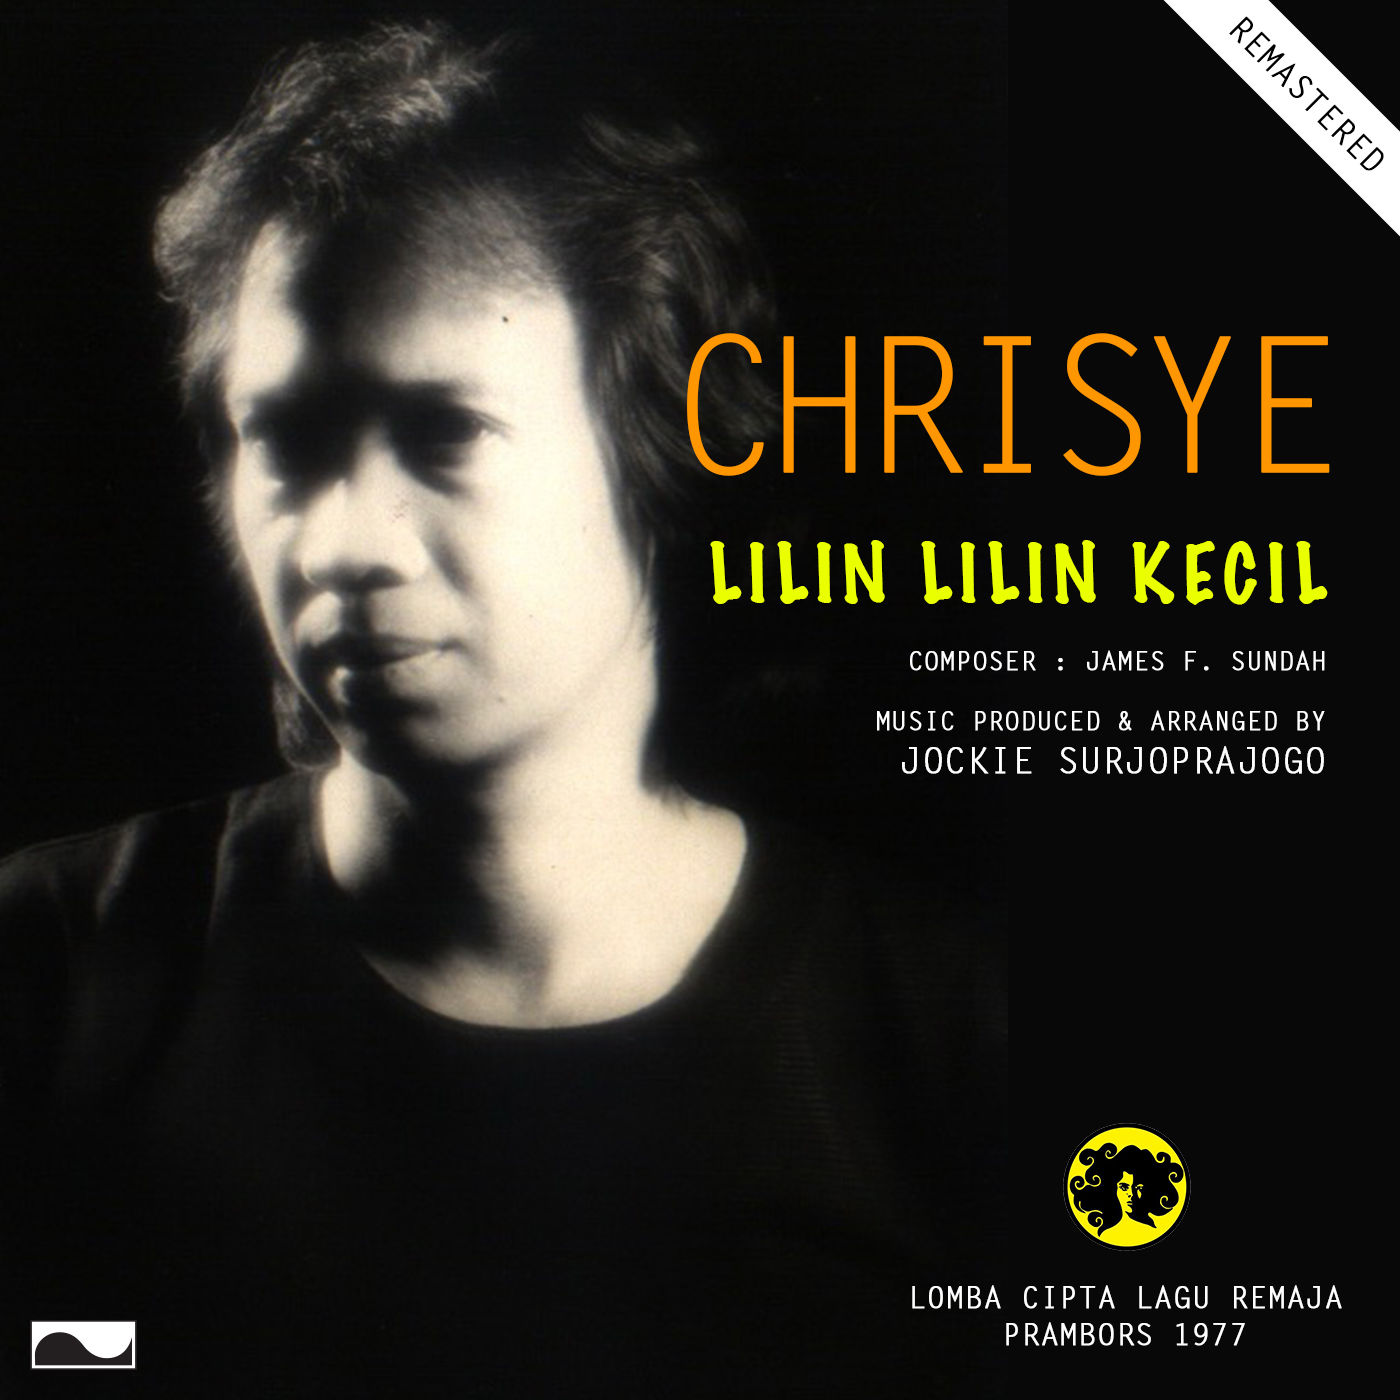 Chrisye - Lilin Lilin Kecil (Remastered) - Single (2016) [iTunes Plus AAC M4A]